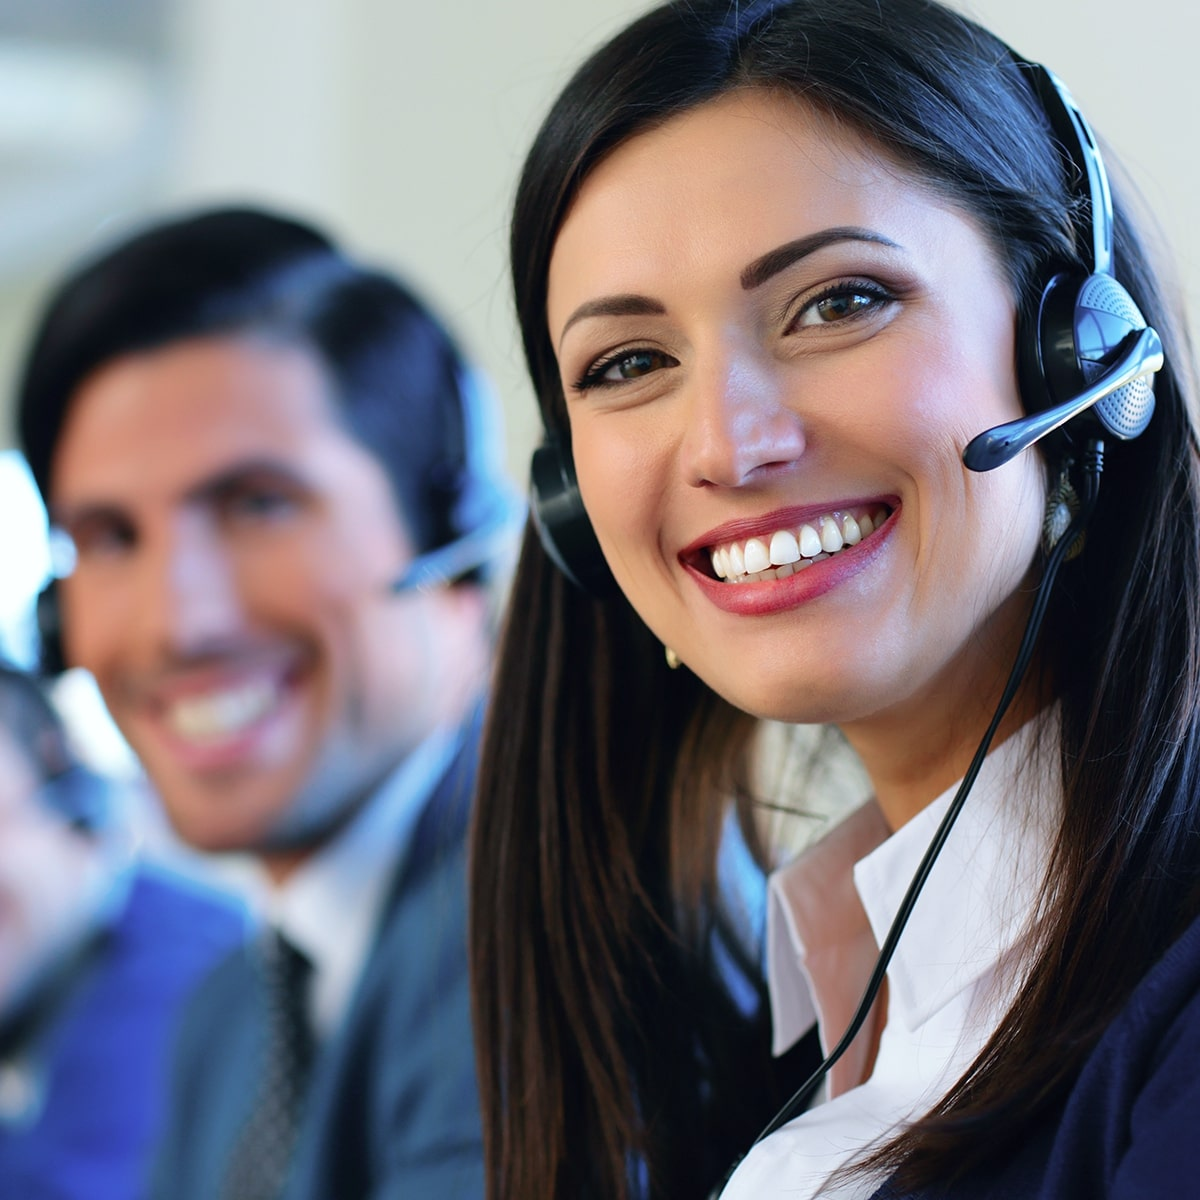 Aavaz is a leading contact center solution provider